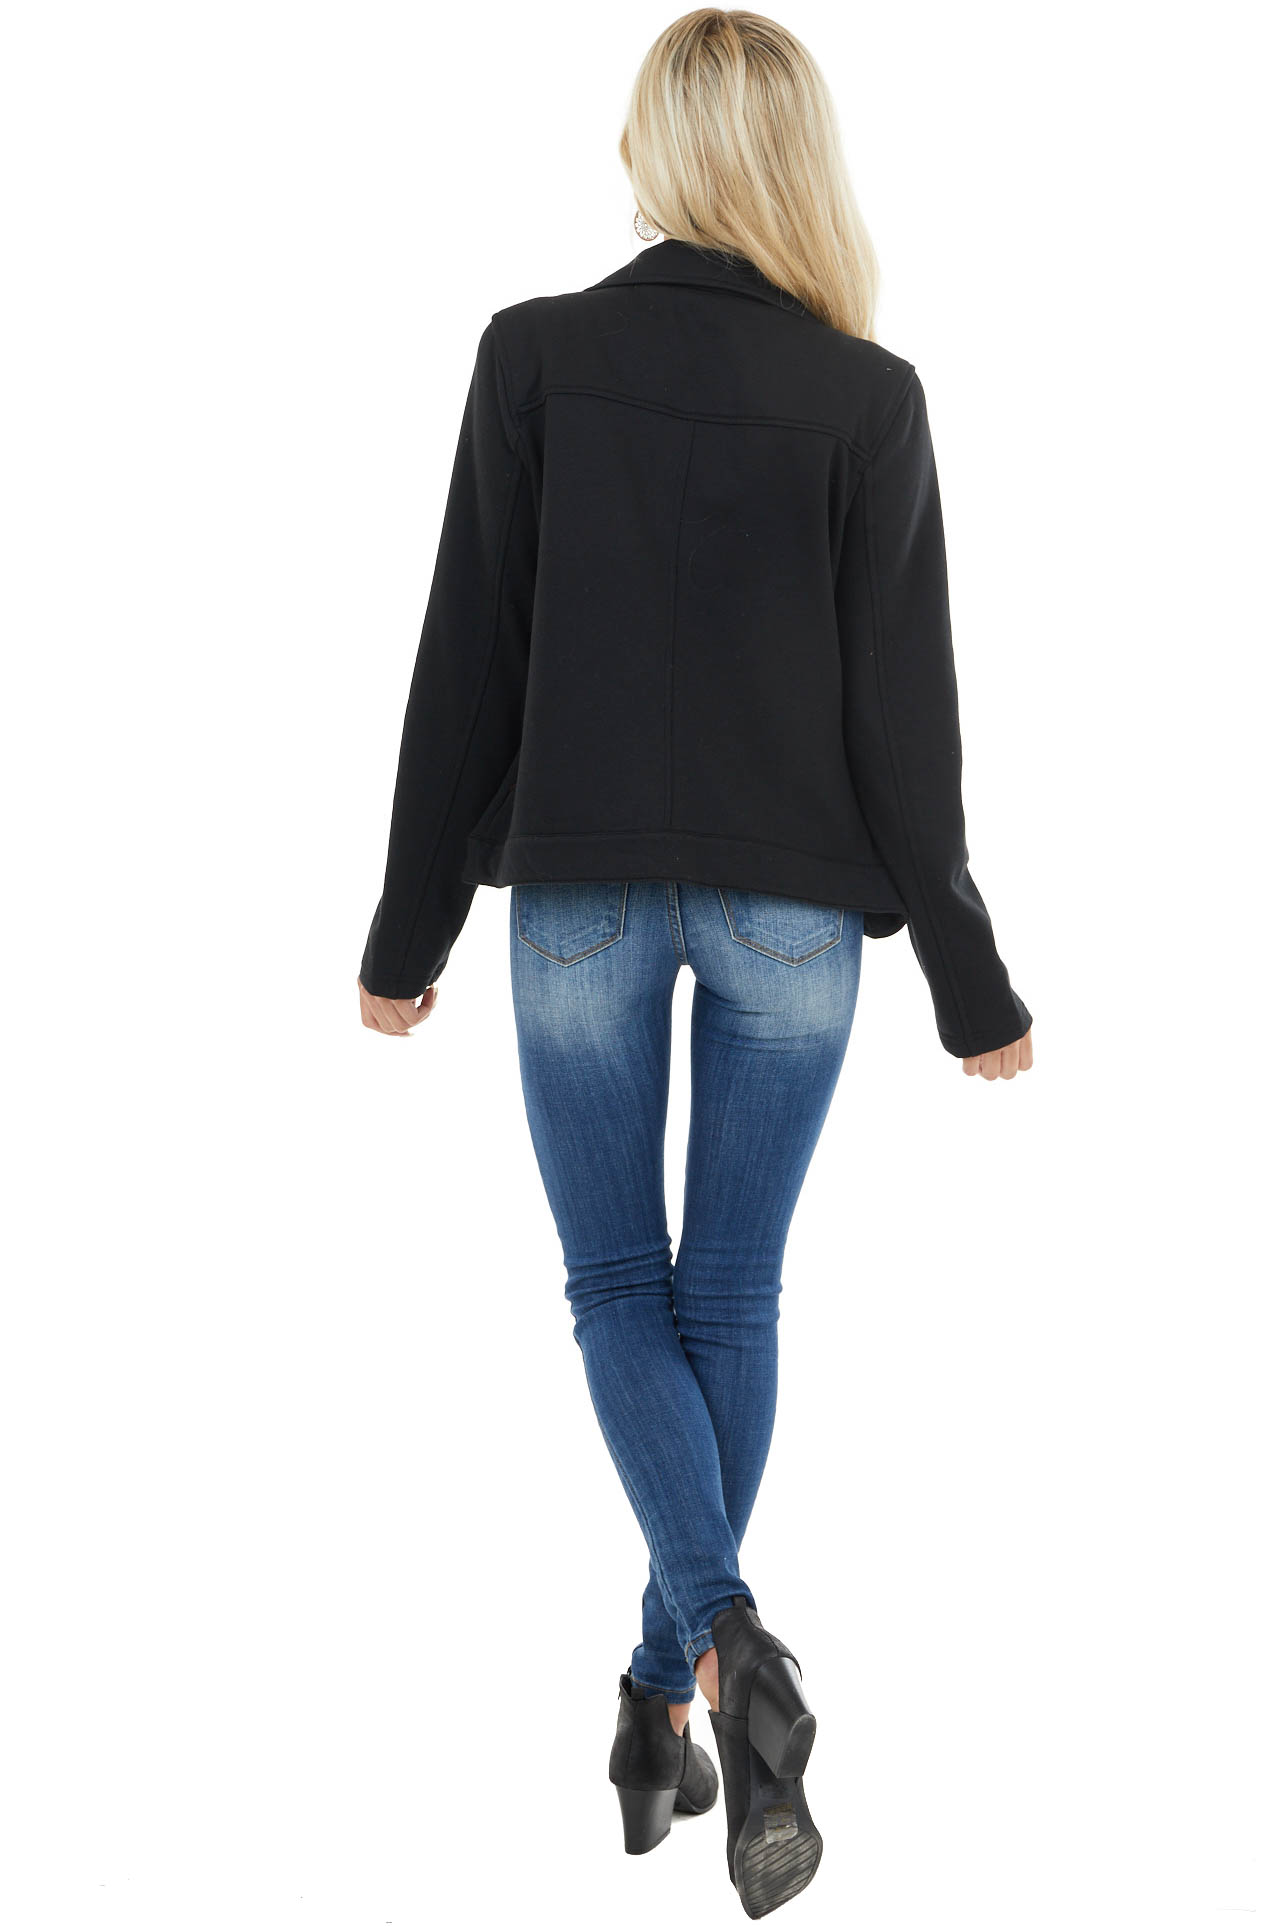 Black Knit Long Sleeve Moto Jacket with Zipper and Pockets